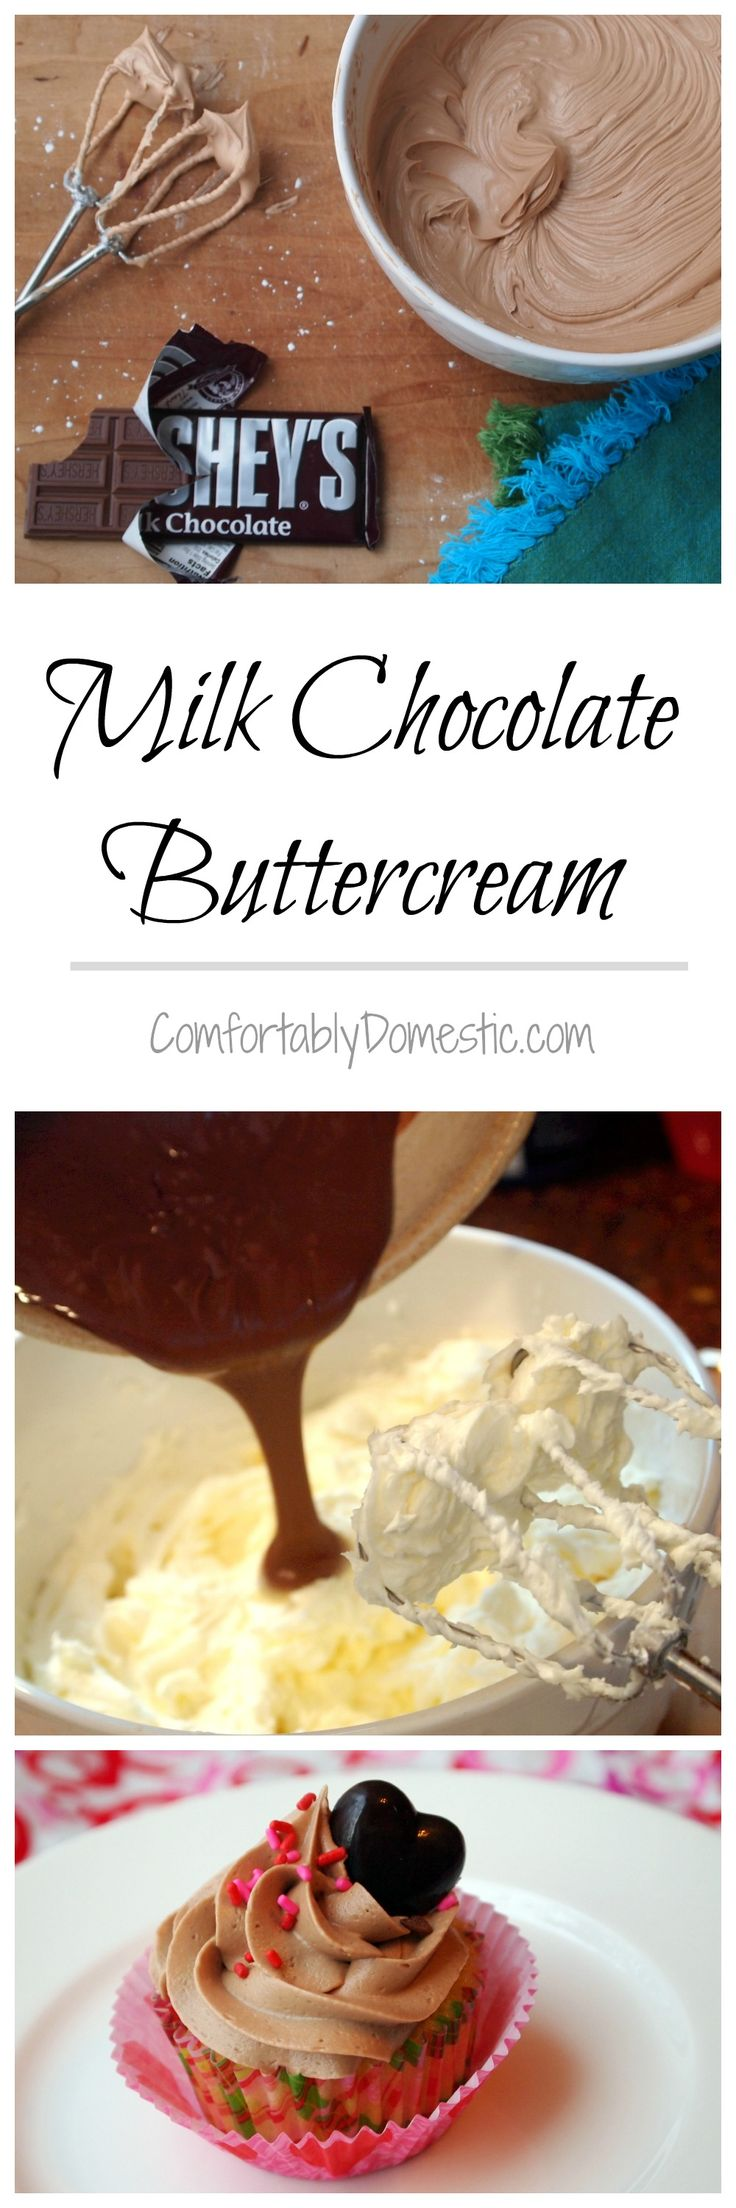 Who Needs Cake When You Have a Spoon? Real Milk Chocolate Buttercream Frosting. - Comfortably Domestic